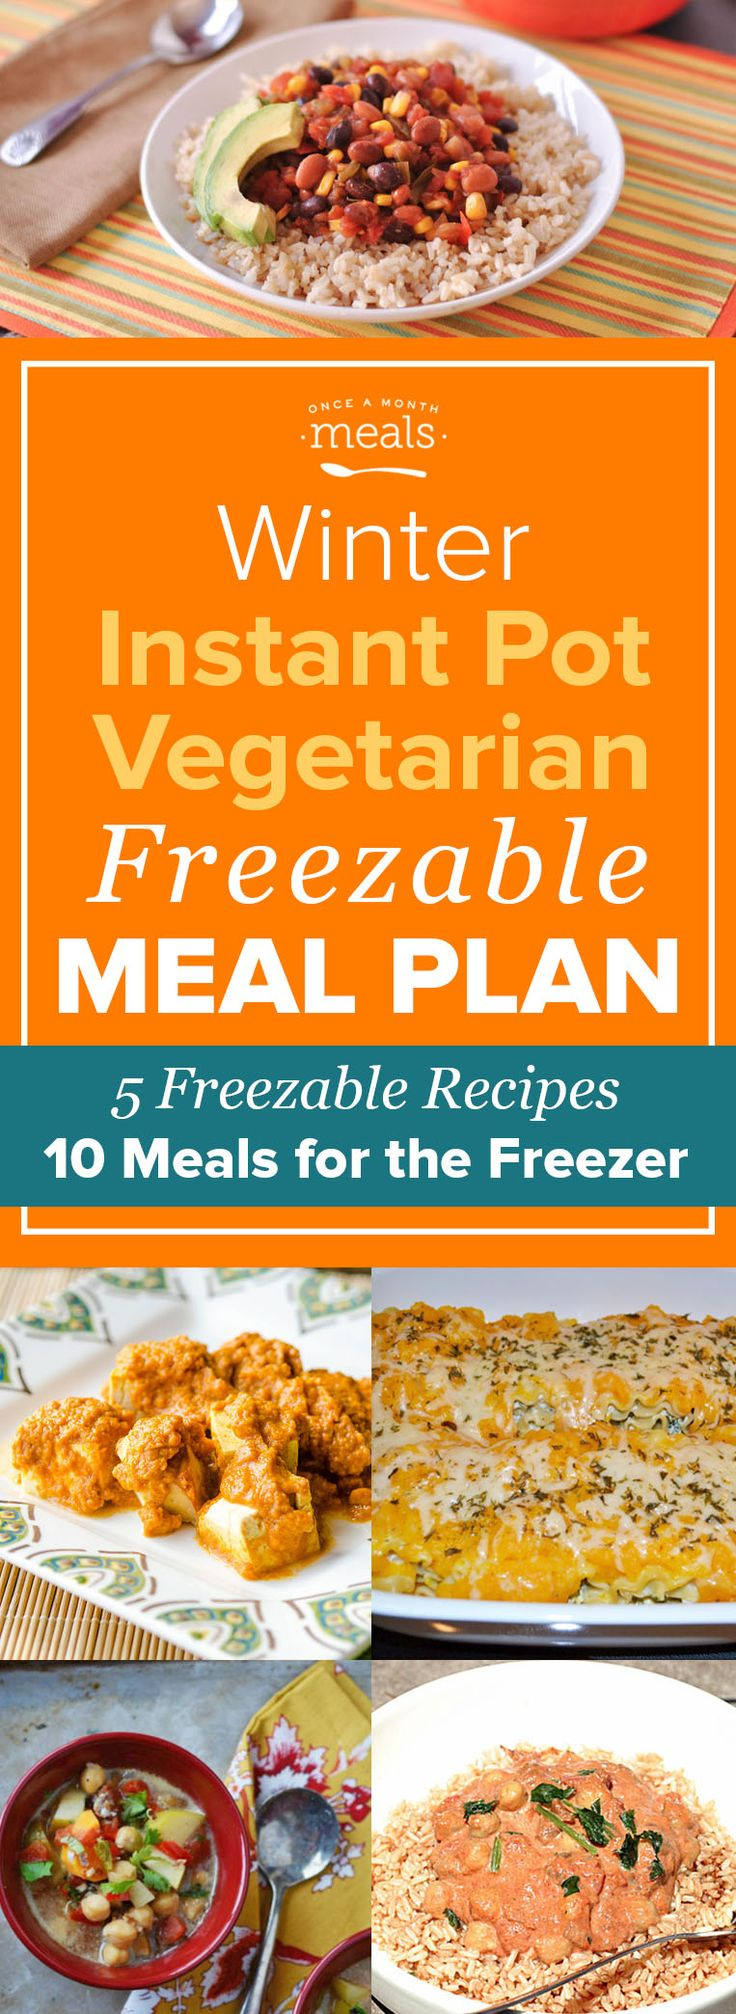 Use your Instant Pot Pressure Cooker to make some Vegetarian comfort meals quickly and easily. Includes recipes such as Coconut Tofu Curry and Taco Chili with Brown Rice.